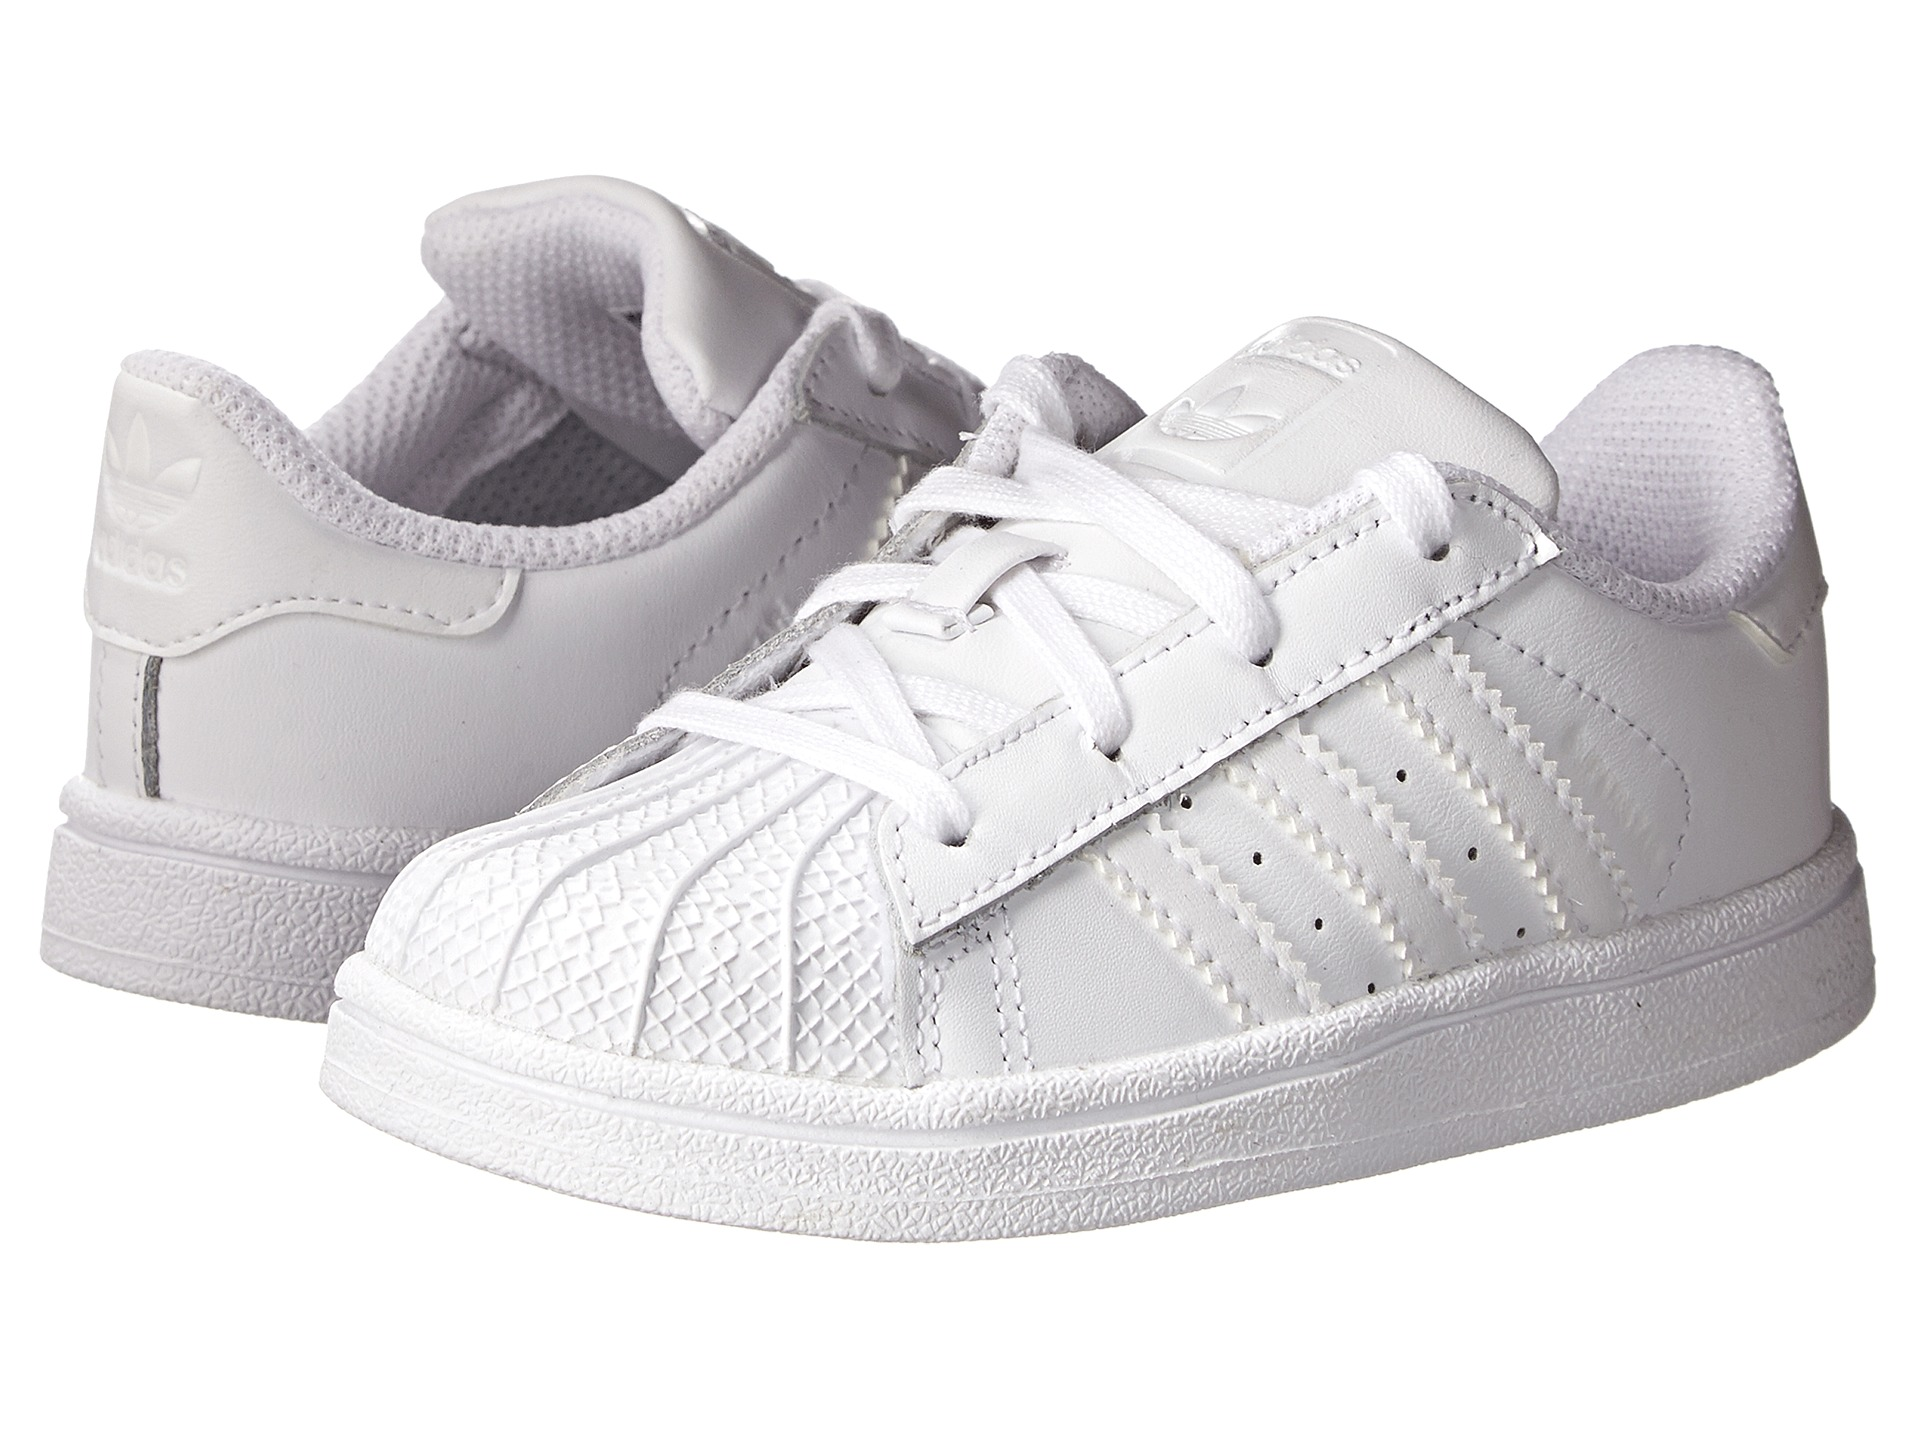 Adidas Superstar Foundation Shoes RockBottomGolf